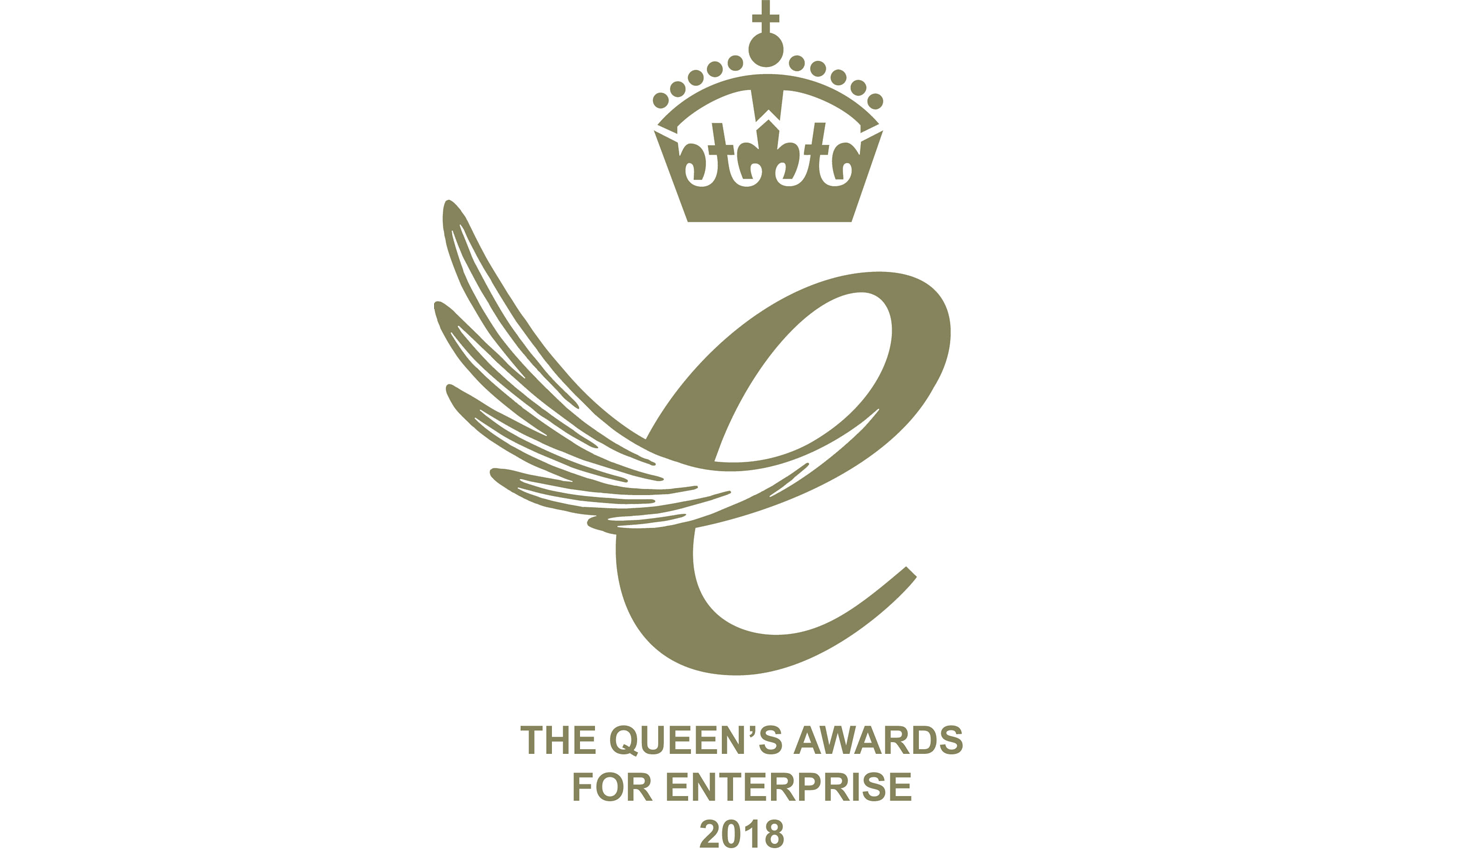 The Queen's Awards for Enterprise 2018